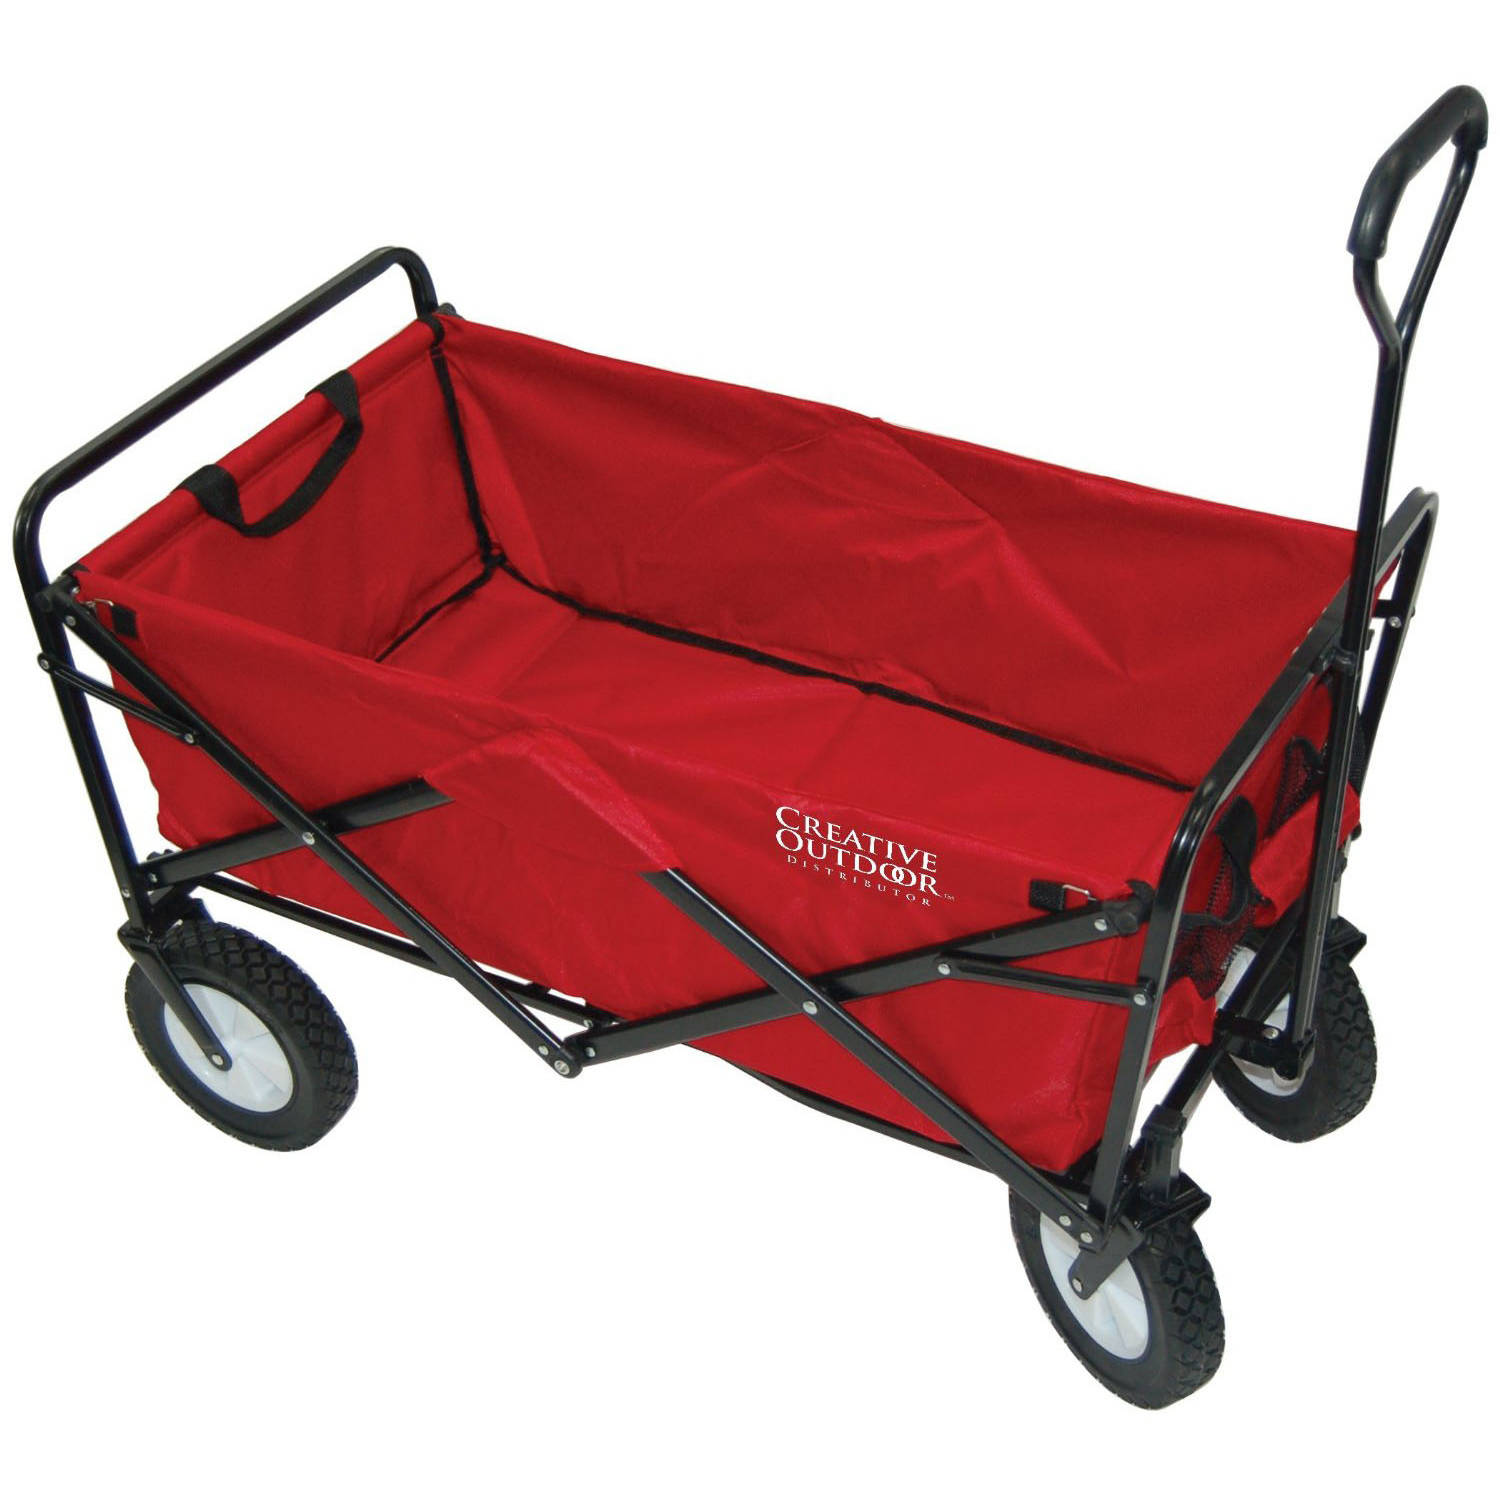 Generic Folding Wagon With Top, Model # 900124